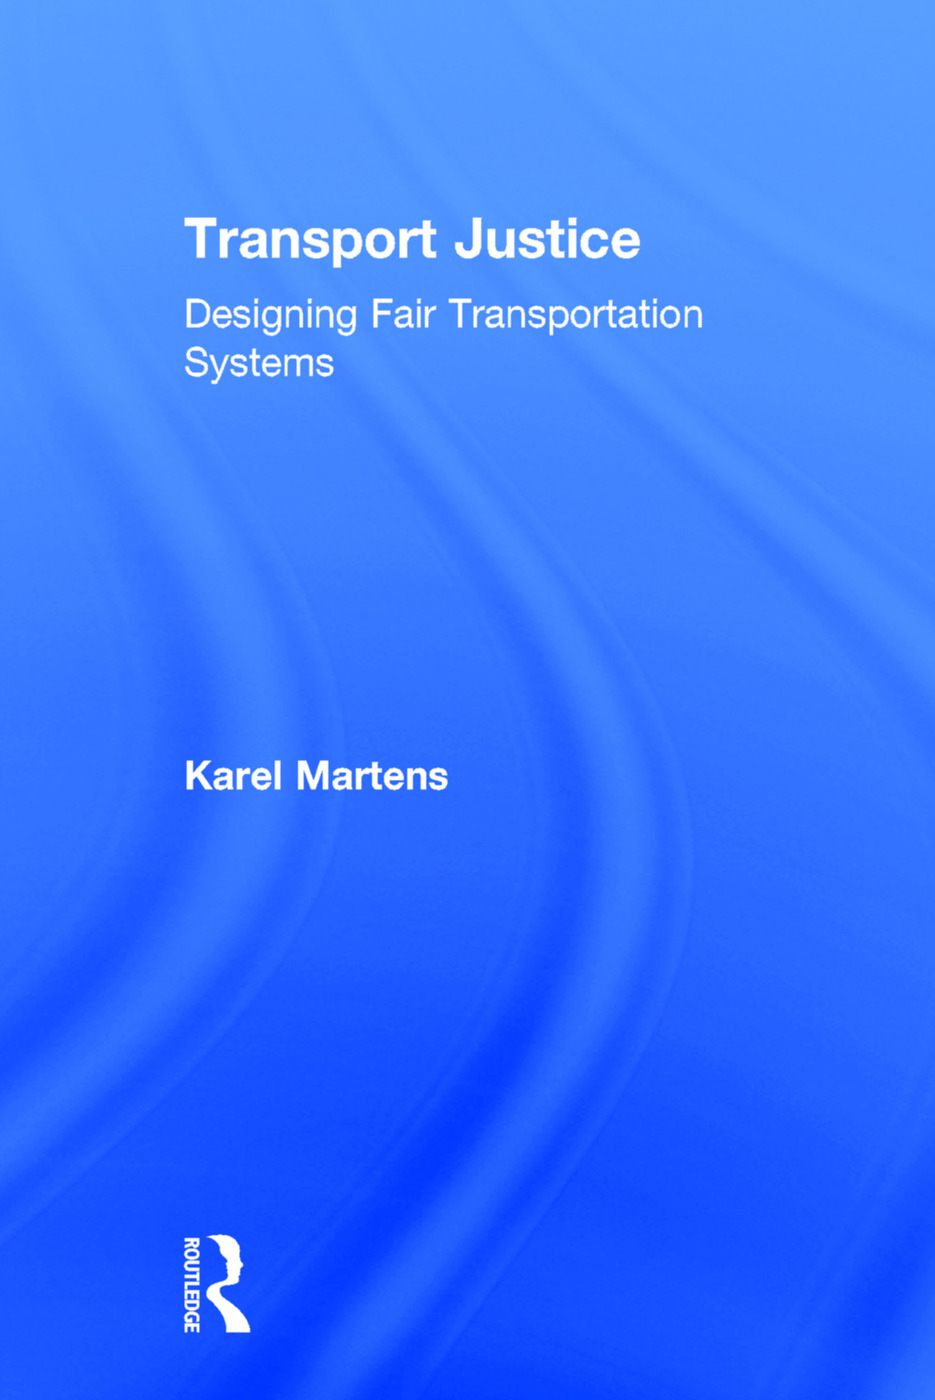 Case Study: The Fairness of Amsterdam's Transportation System